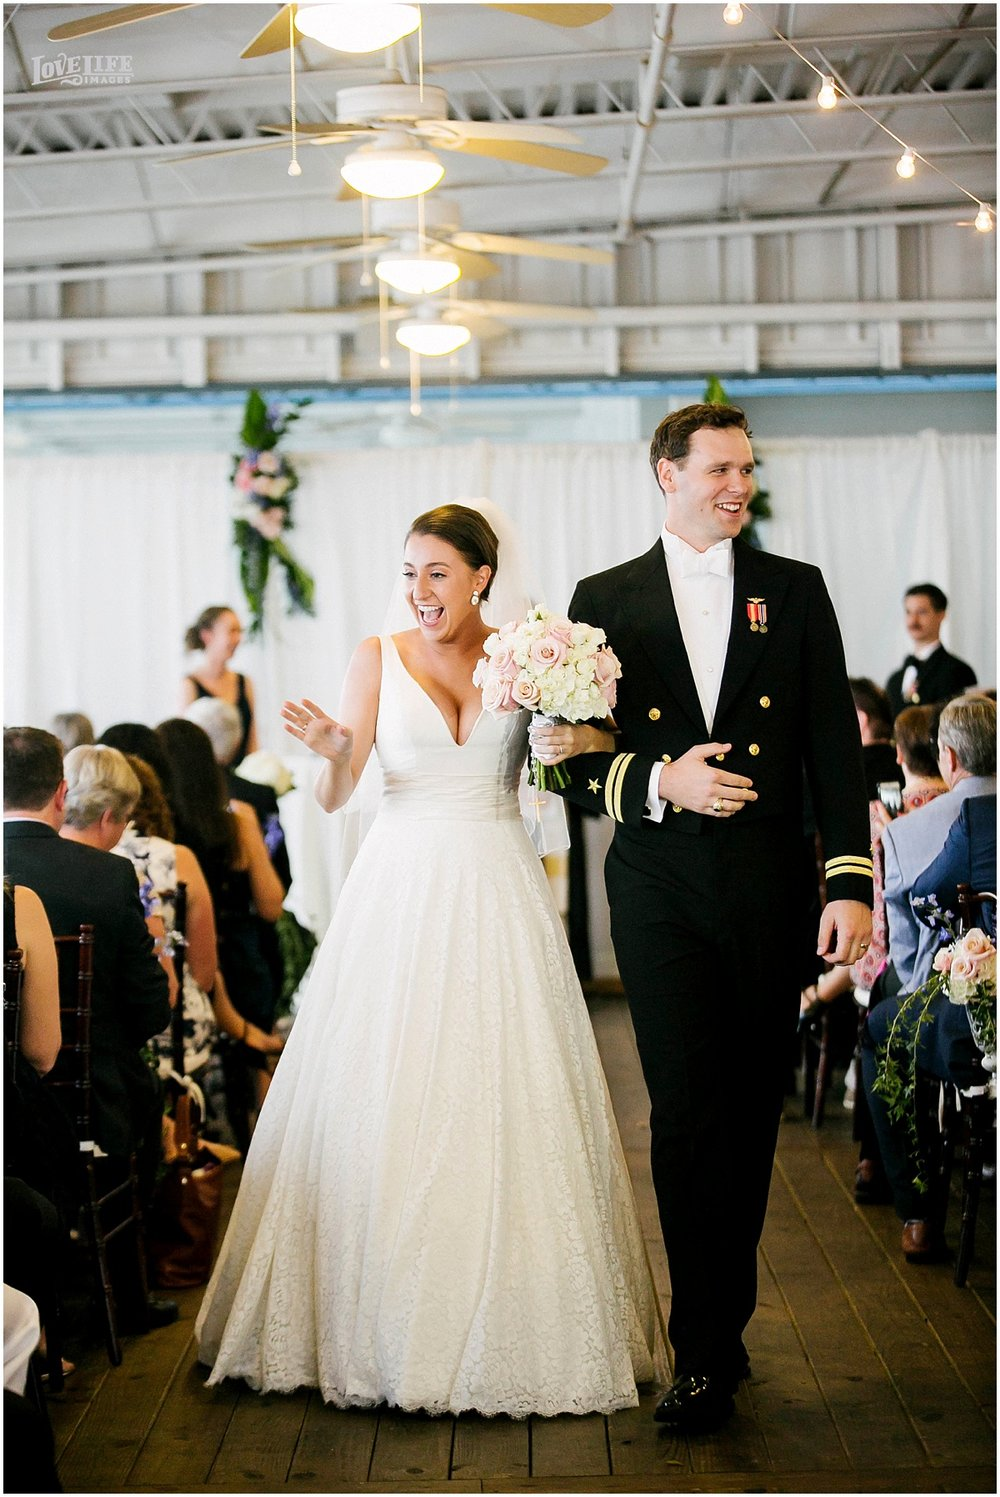 bride and groom processional.JPG